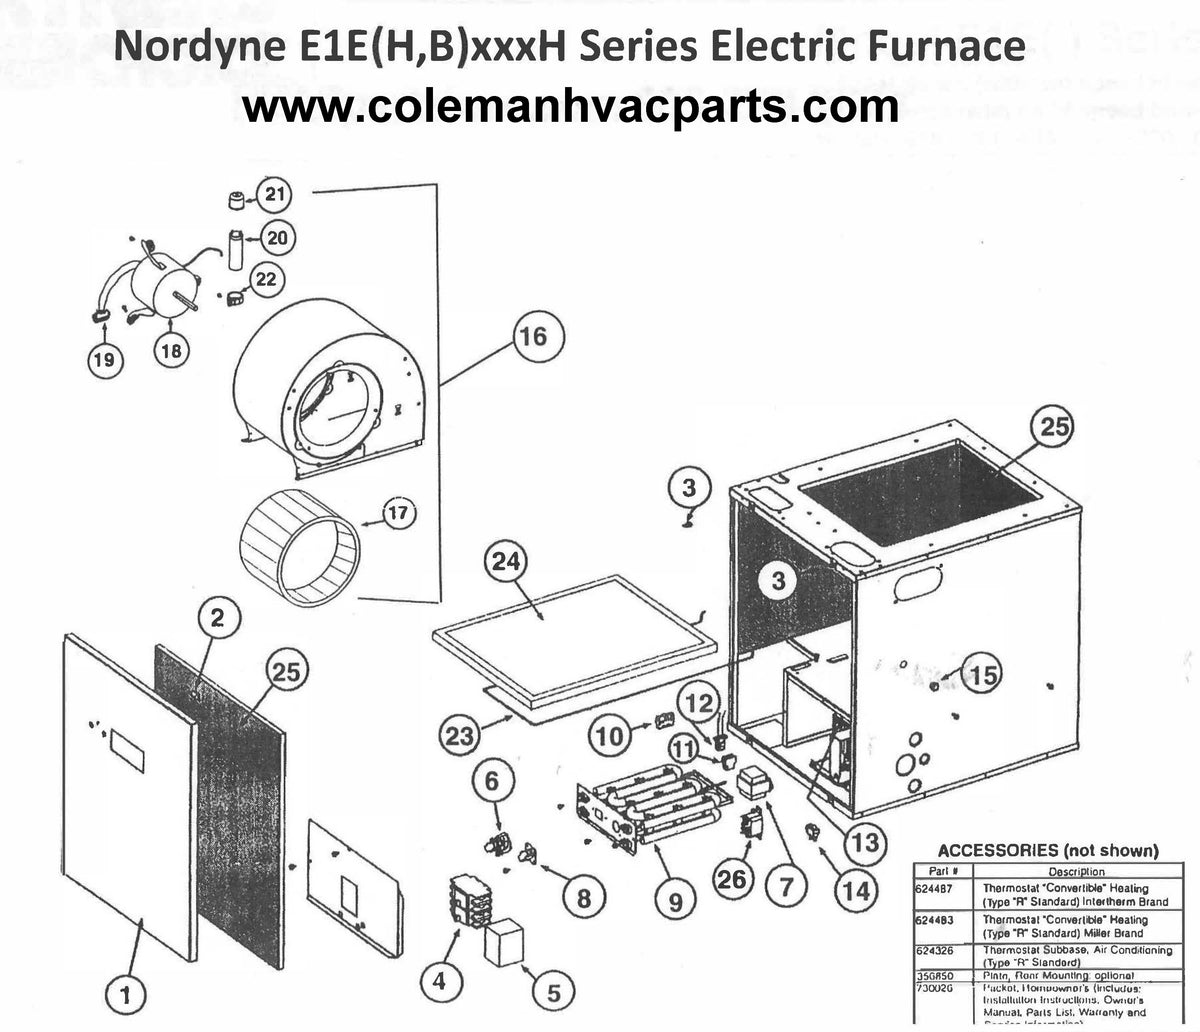 E1eh017h Nordyne Electric Furnace Parts  U2013 Hvacpartstore